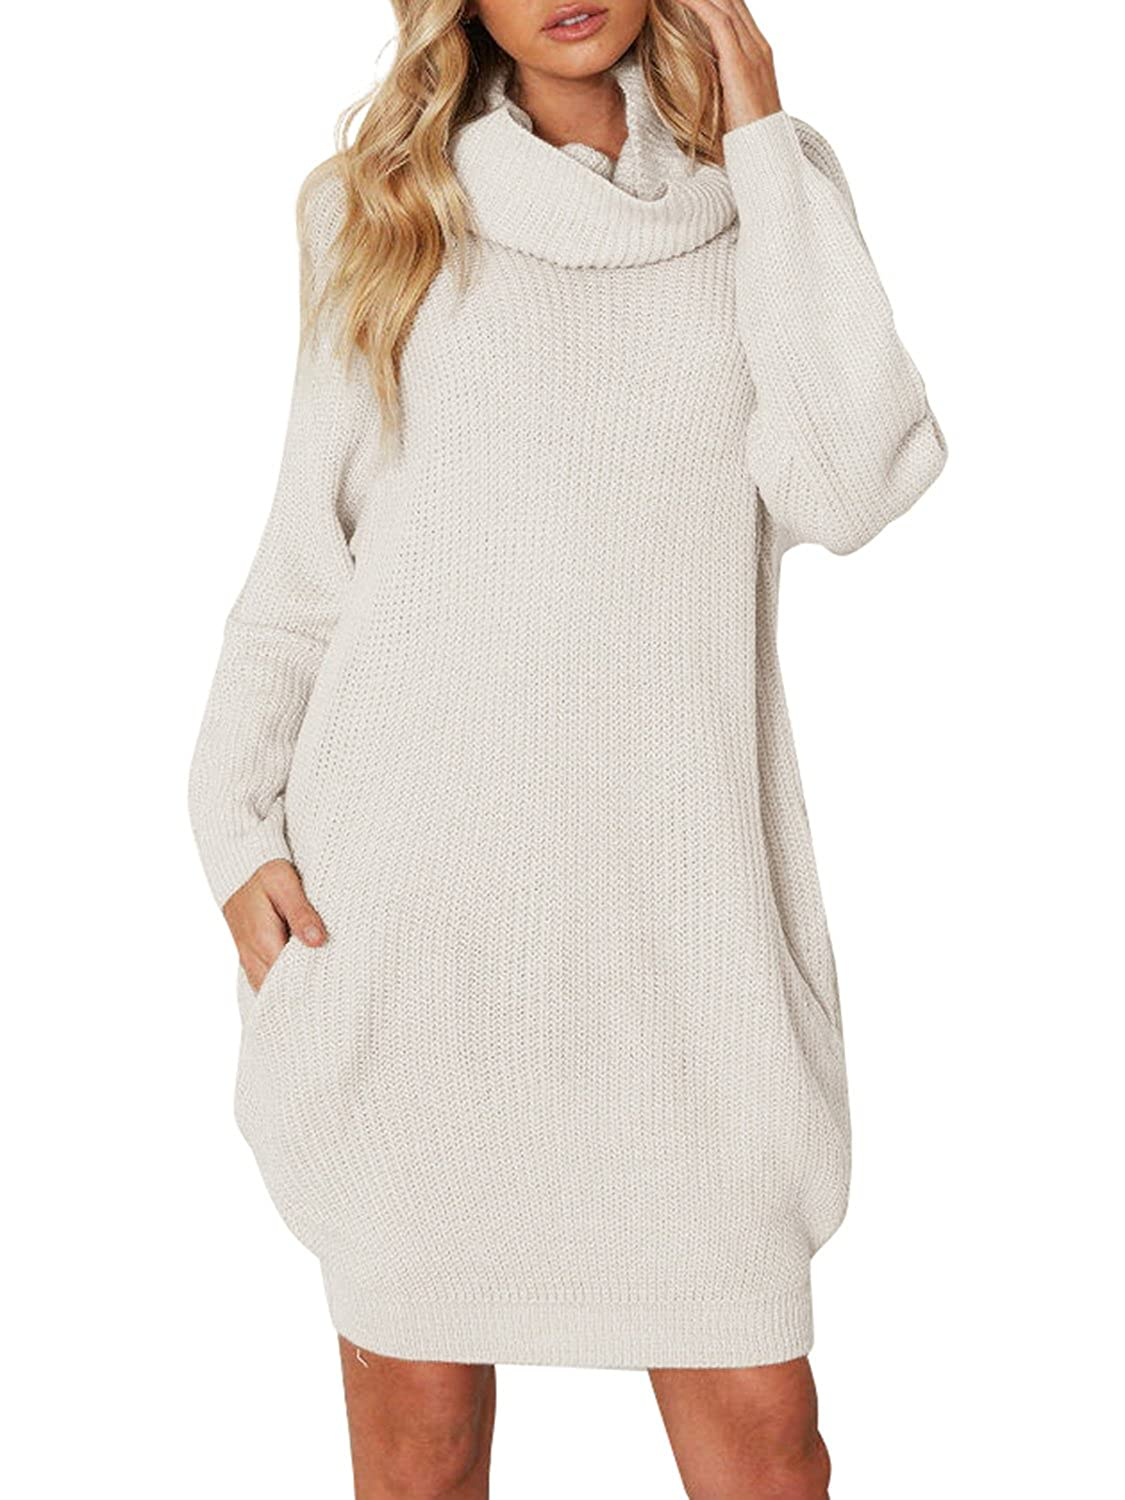 Sanifer Women Oversized Loose Knited Long Turtleneck Sweater Dress ...